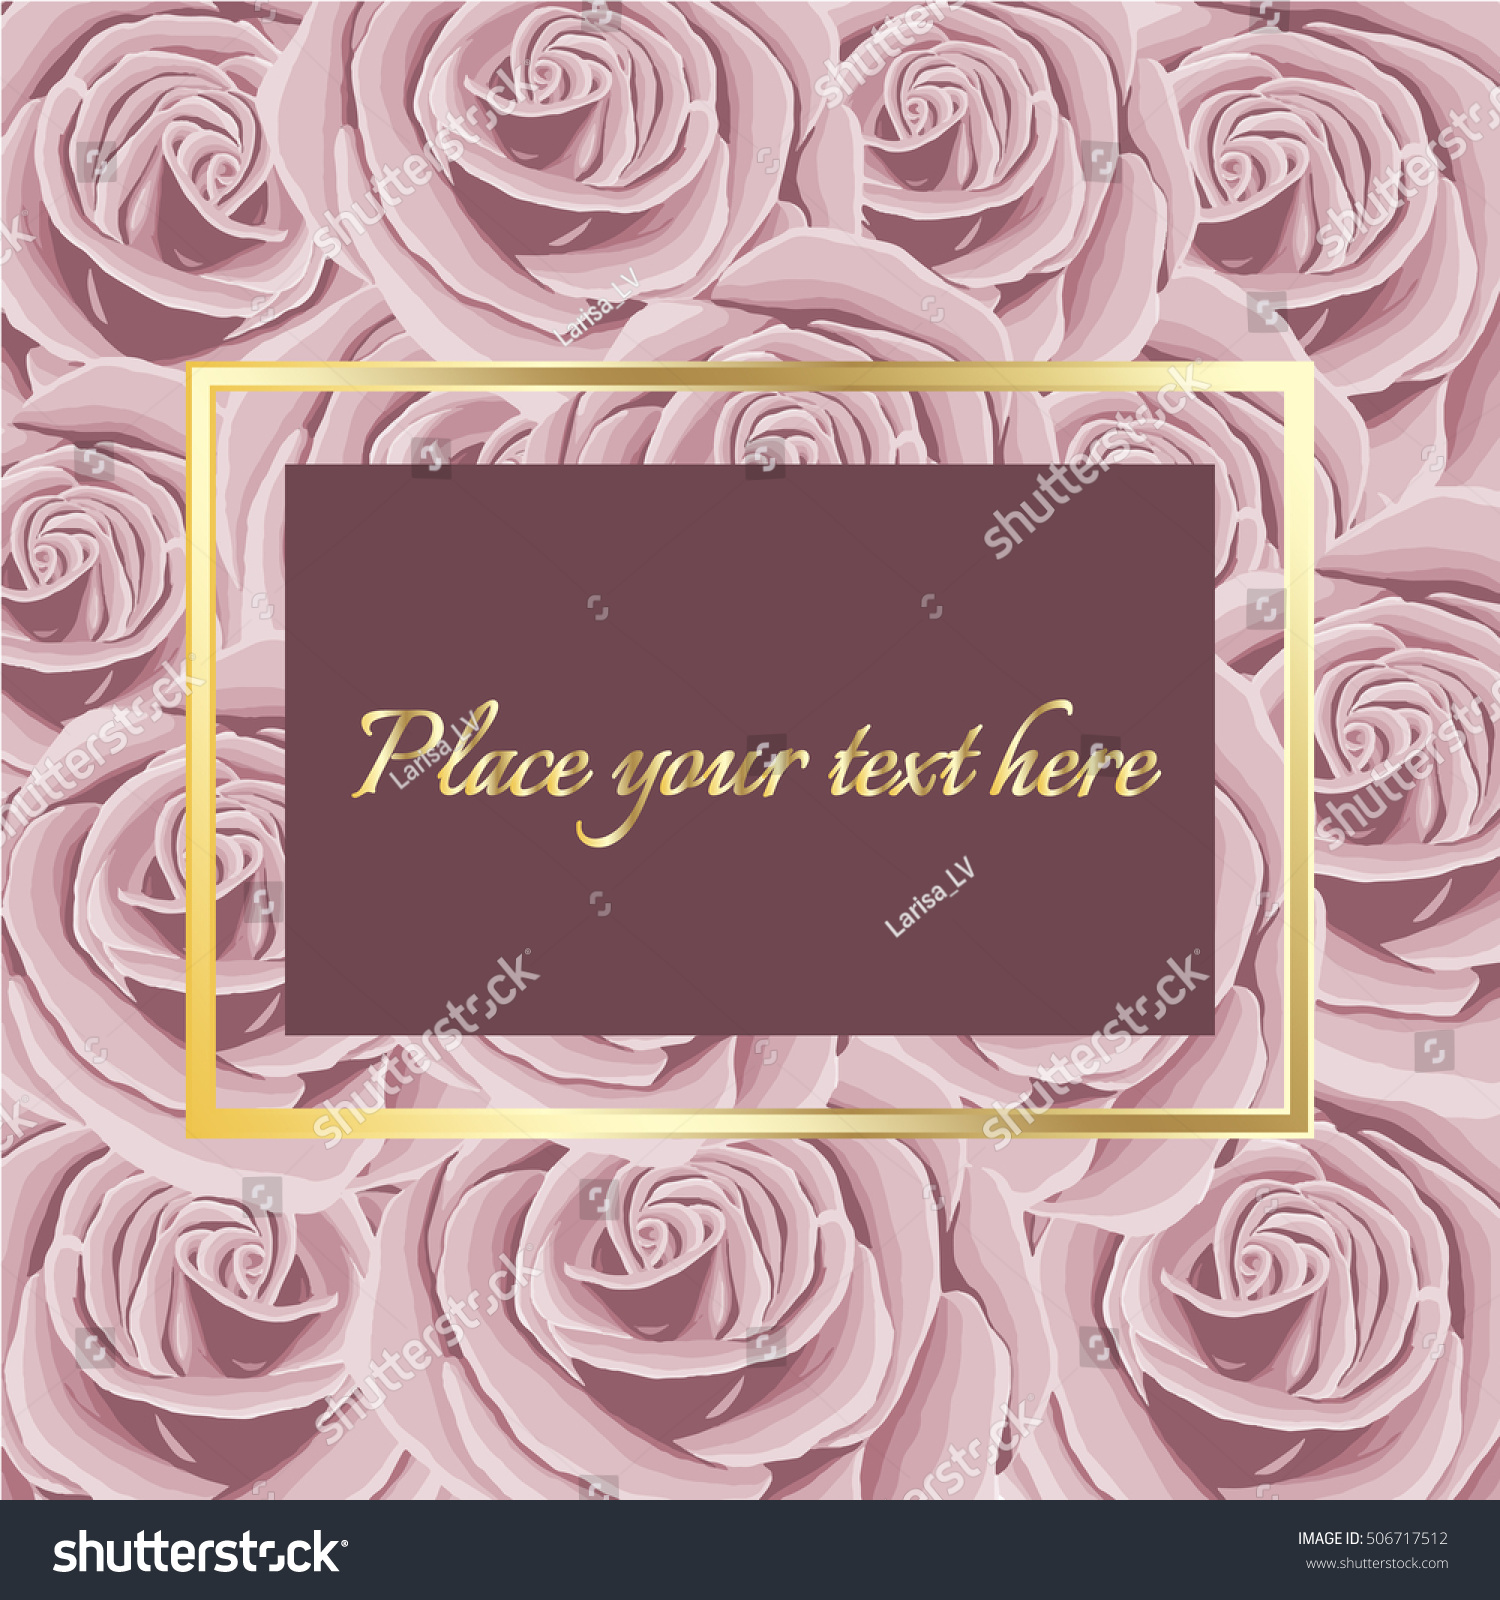 Wedding Invitation Pink Roses Background Golden Stock Vector (2018 ...